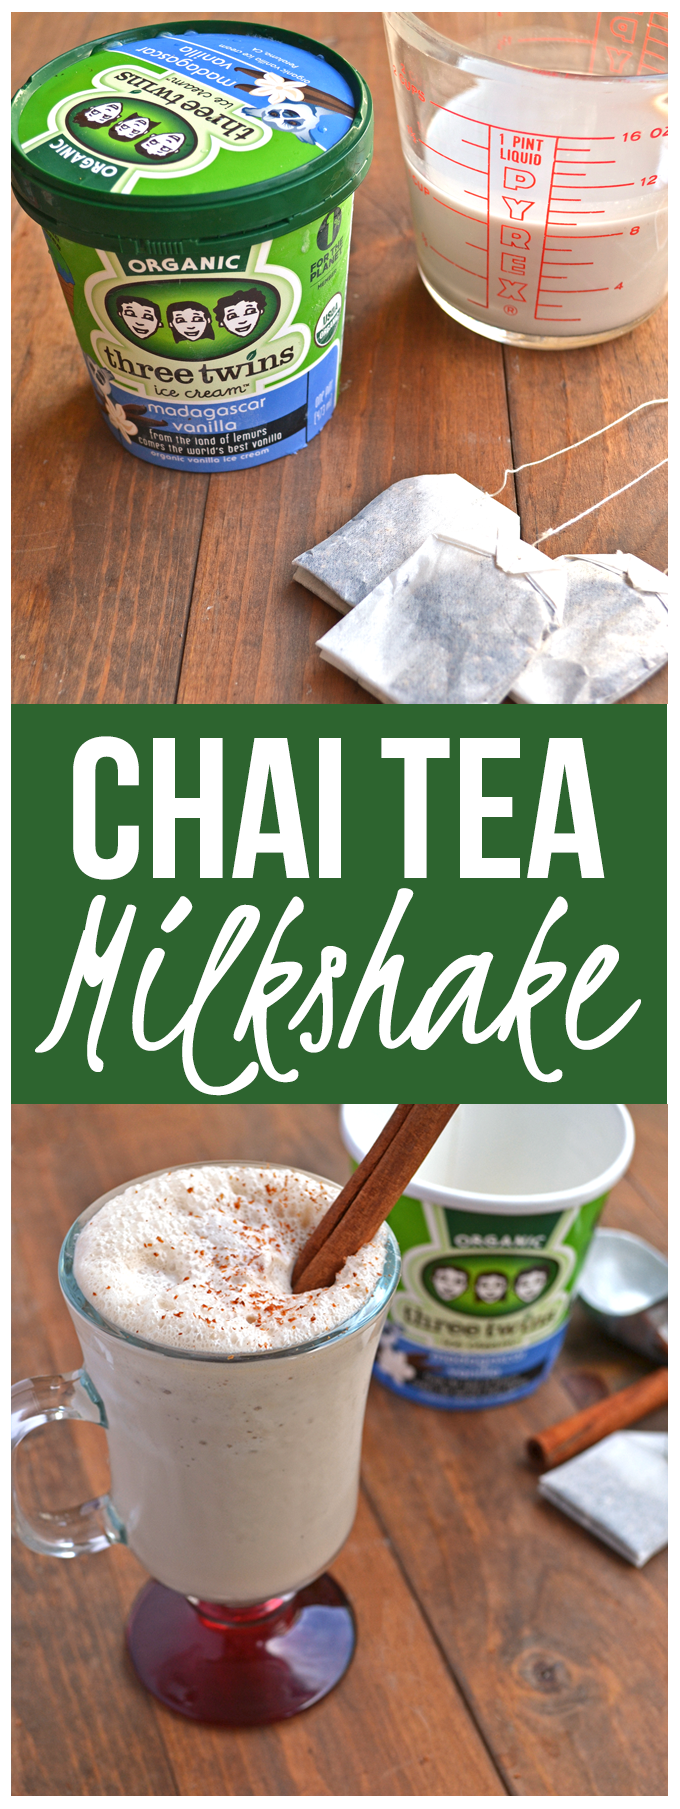 Chai Tea Milkshake - A simple twist on a a spicy and yummy drink! Made with Three Twins Organic Ice Cream!